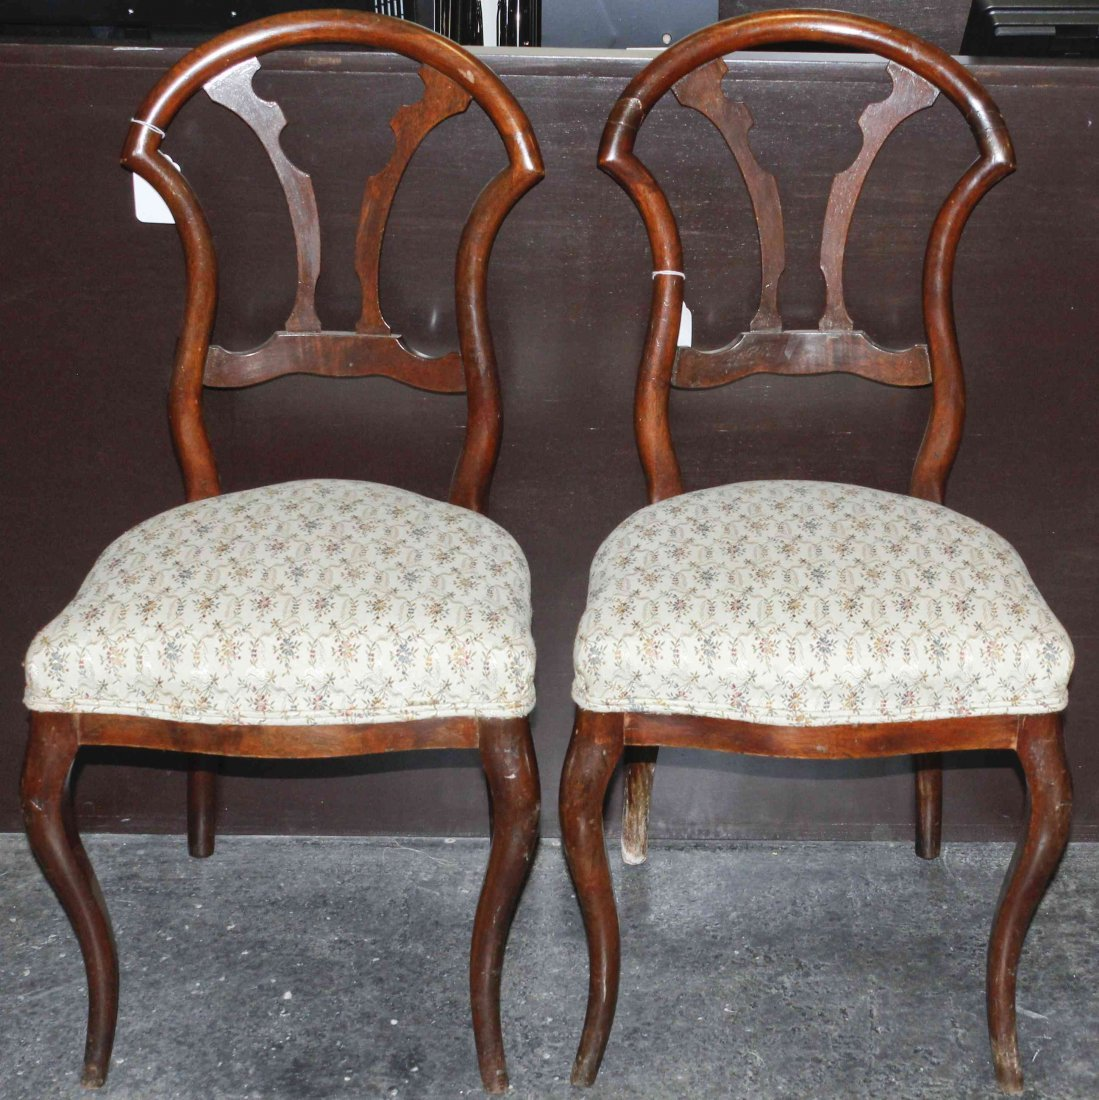 A Pair of Mahogany Side Chairs, Height 33 7/8 inches.